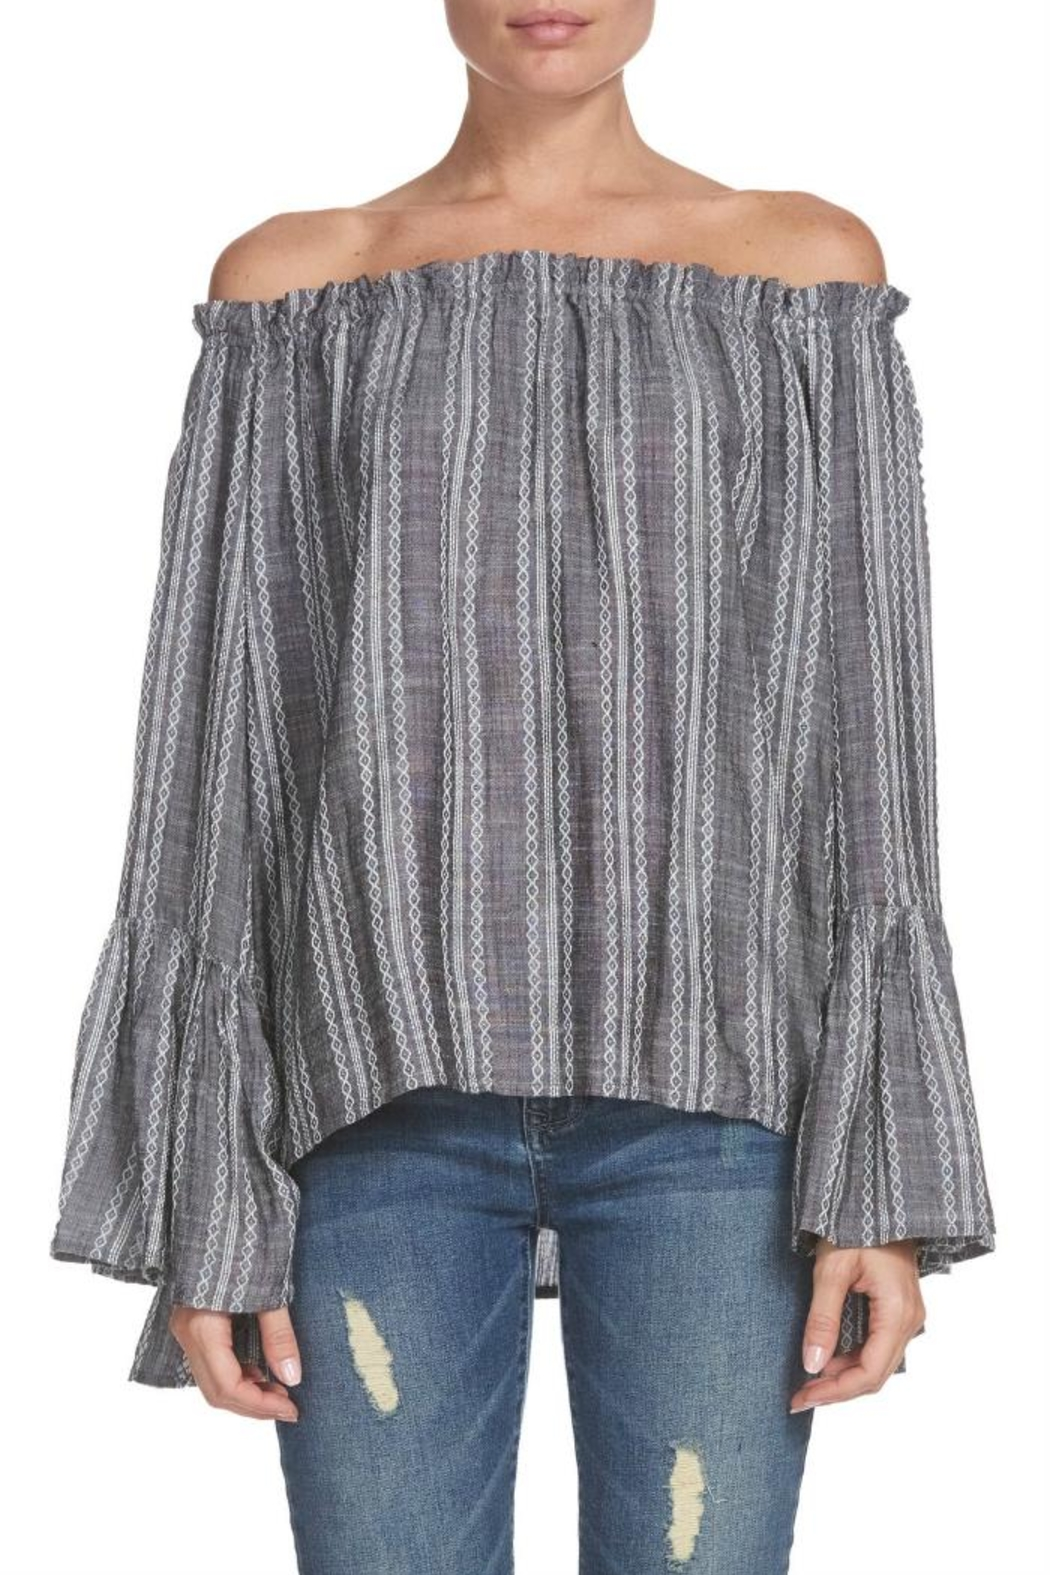 837796e25029f5 Elan Ots Bell-Sleeve Top from Pennsylvania by The Hanger — Shoptiques